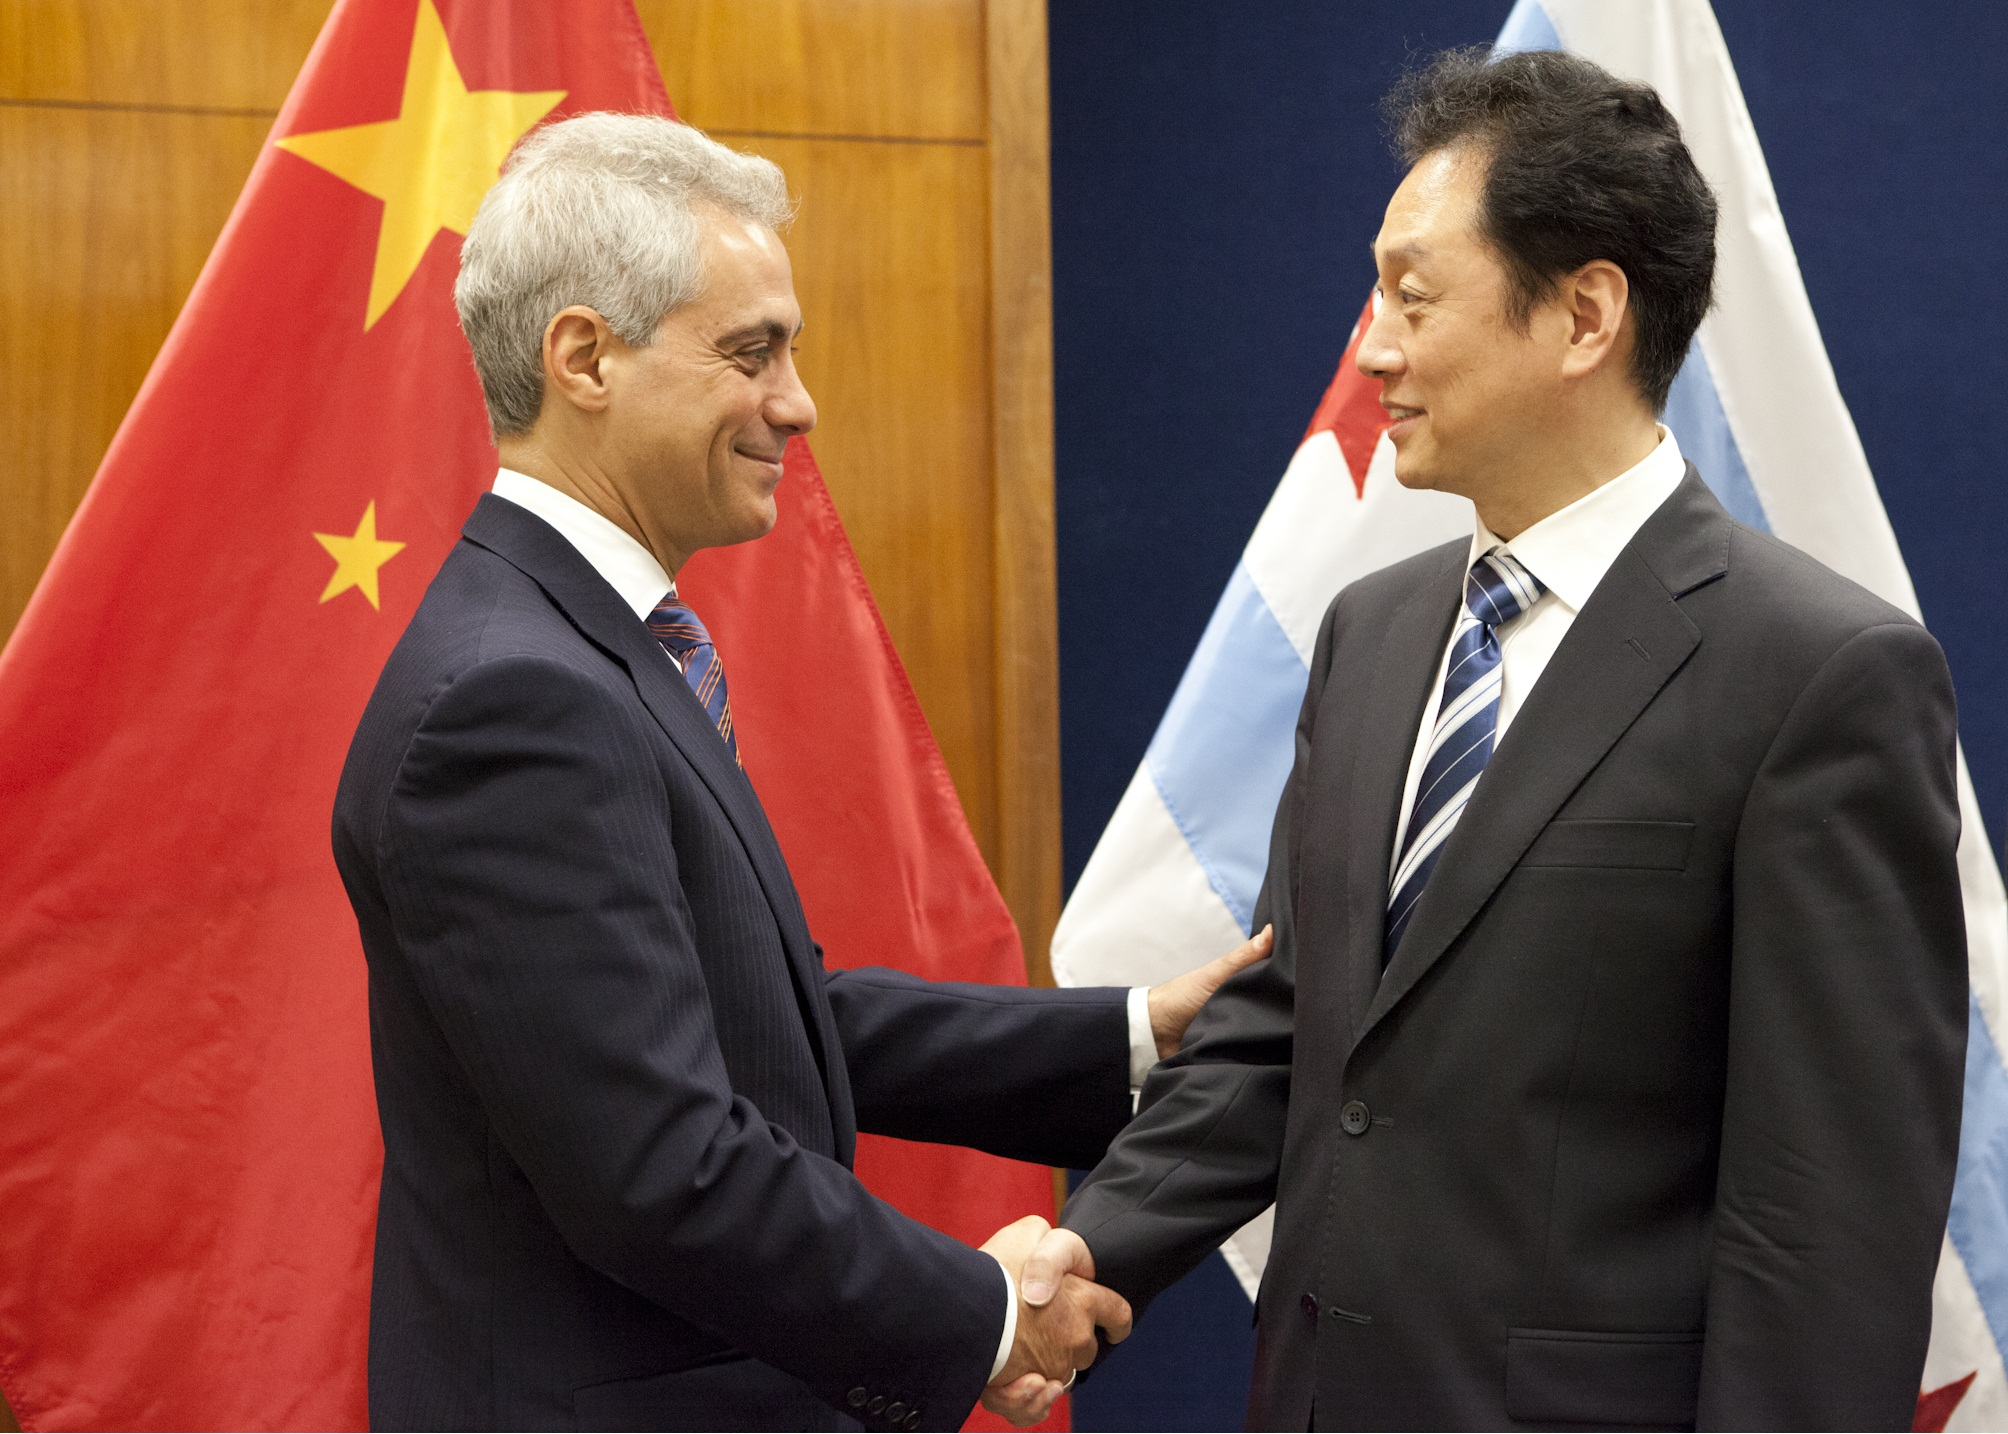 Mayor Emanuel welcomes to Chicago Mr. Wang Chao, Vice Minister of Commerce for the People's Republic of China.  Photo Credit: Brooke C